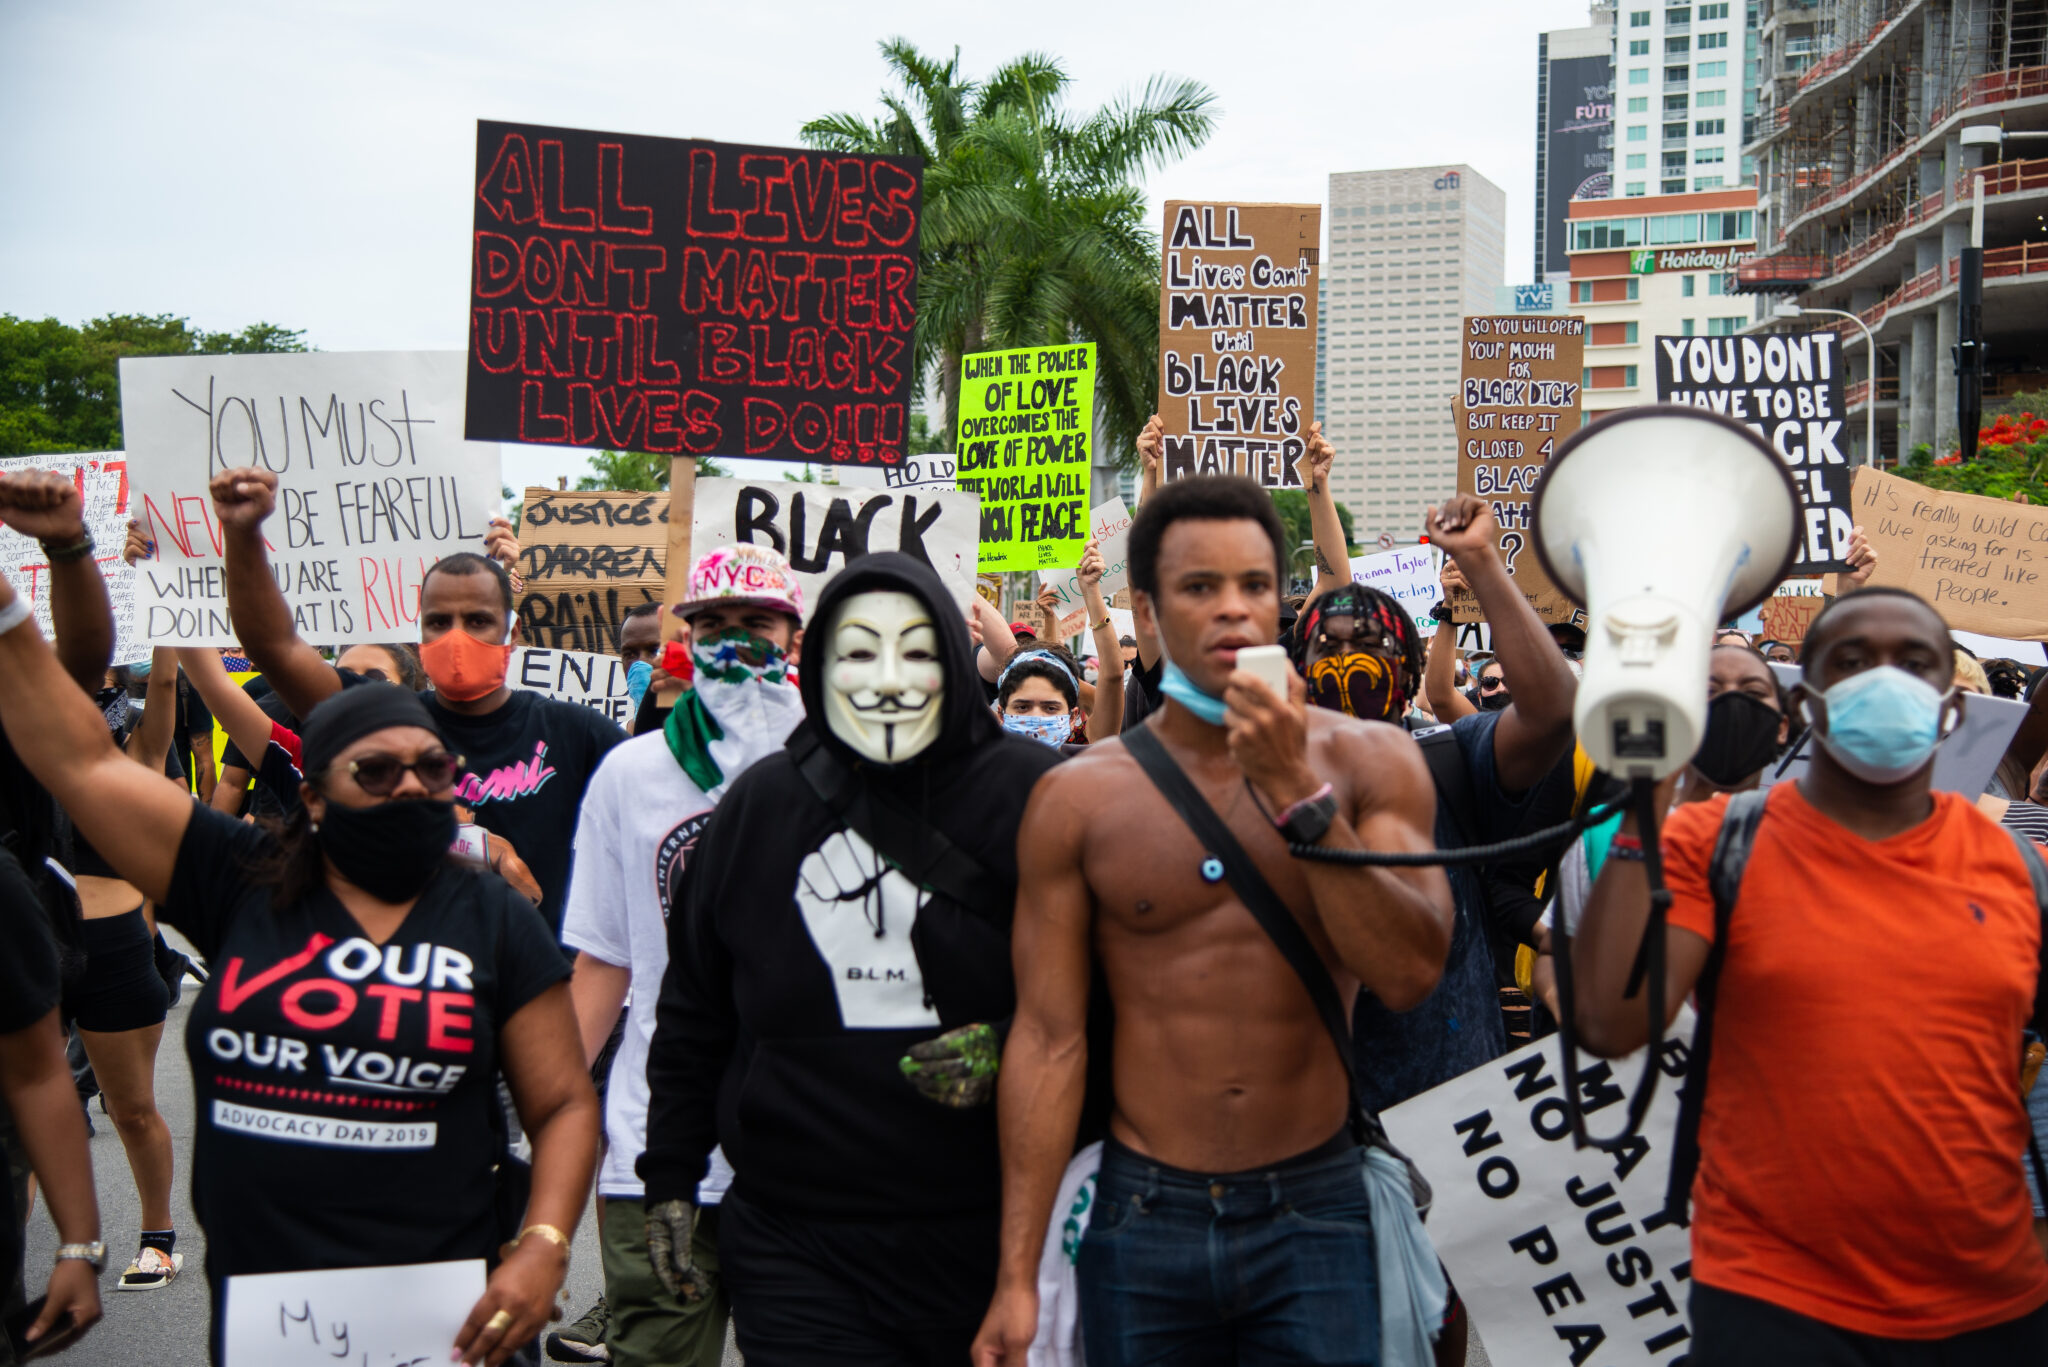 George Floyd protests in Miami on June 6. (Mike Shaheen, Flickr, CC BY 2.0, Wikimedia Commons)